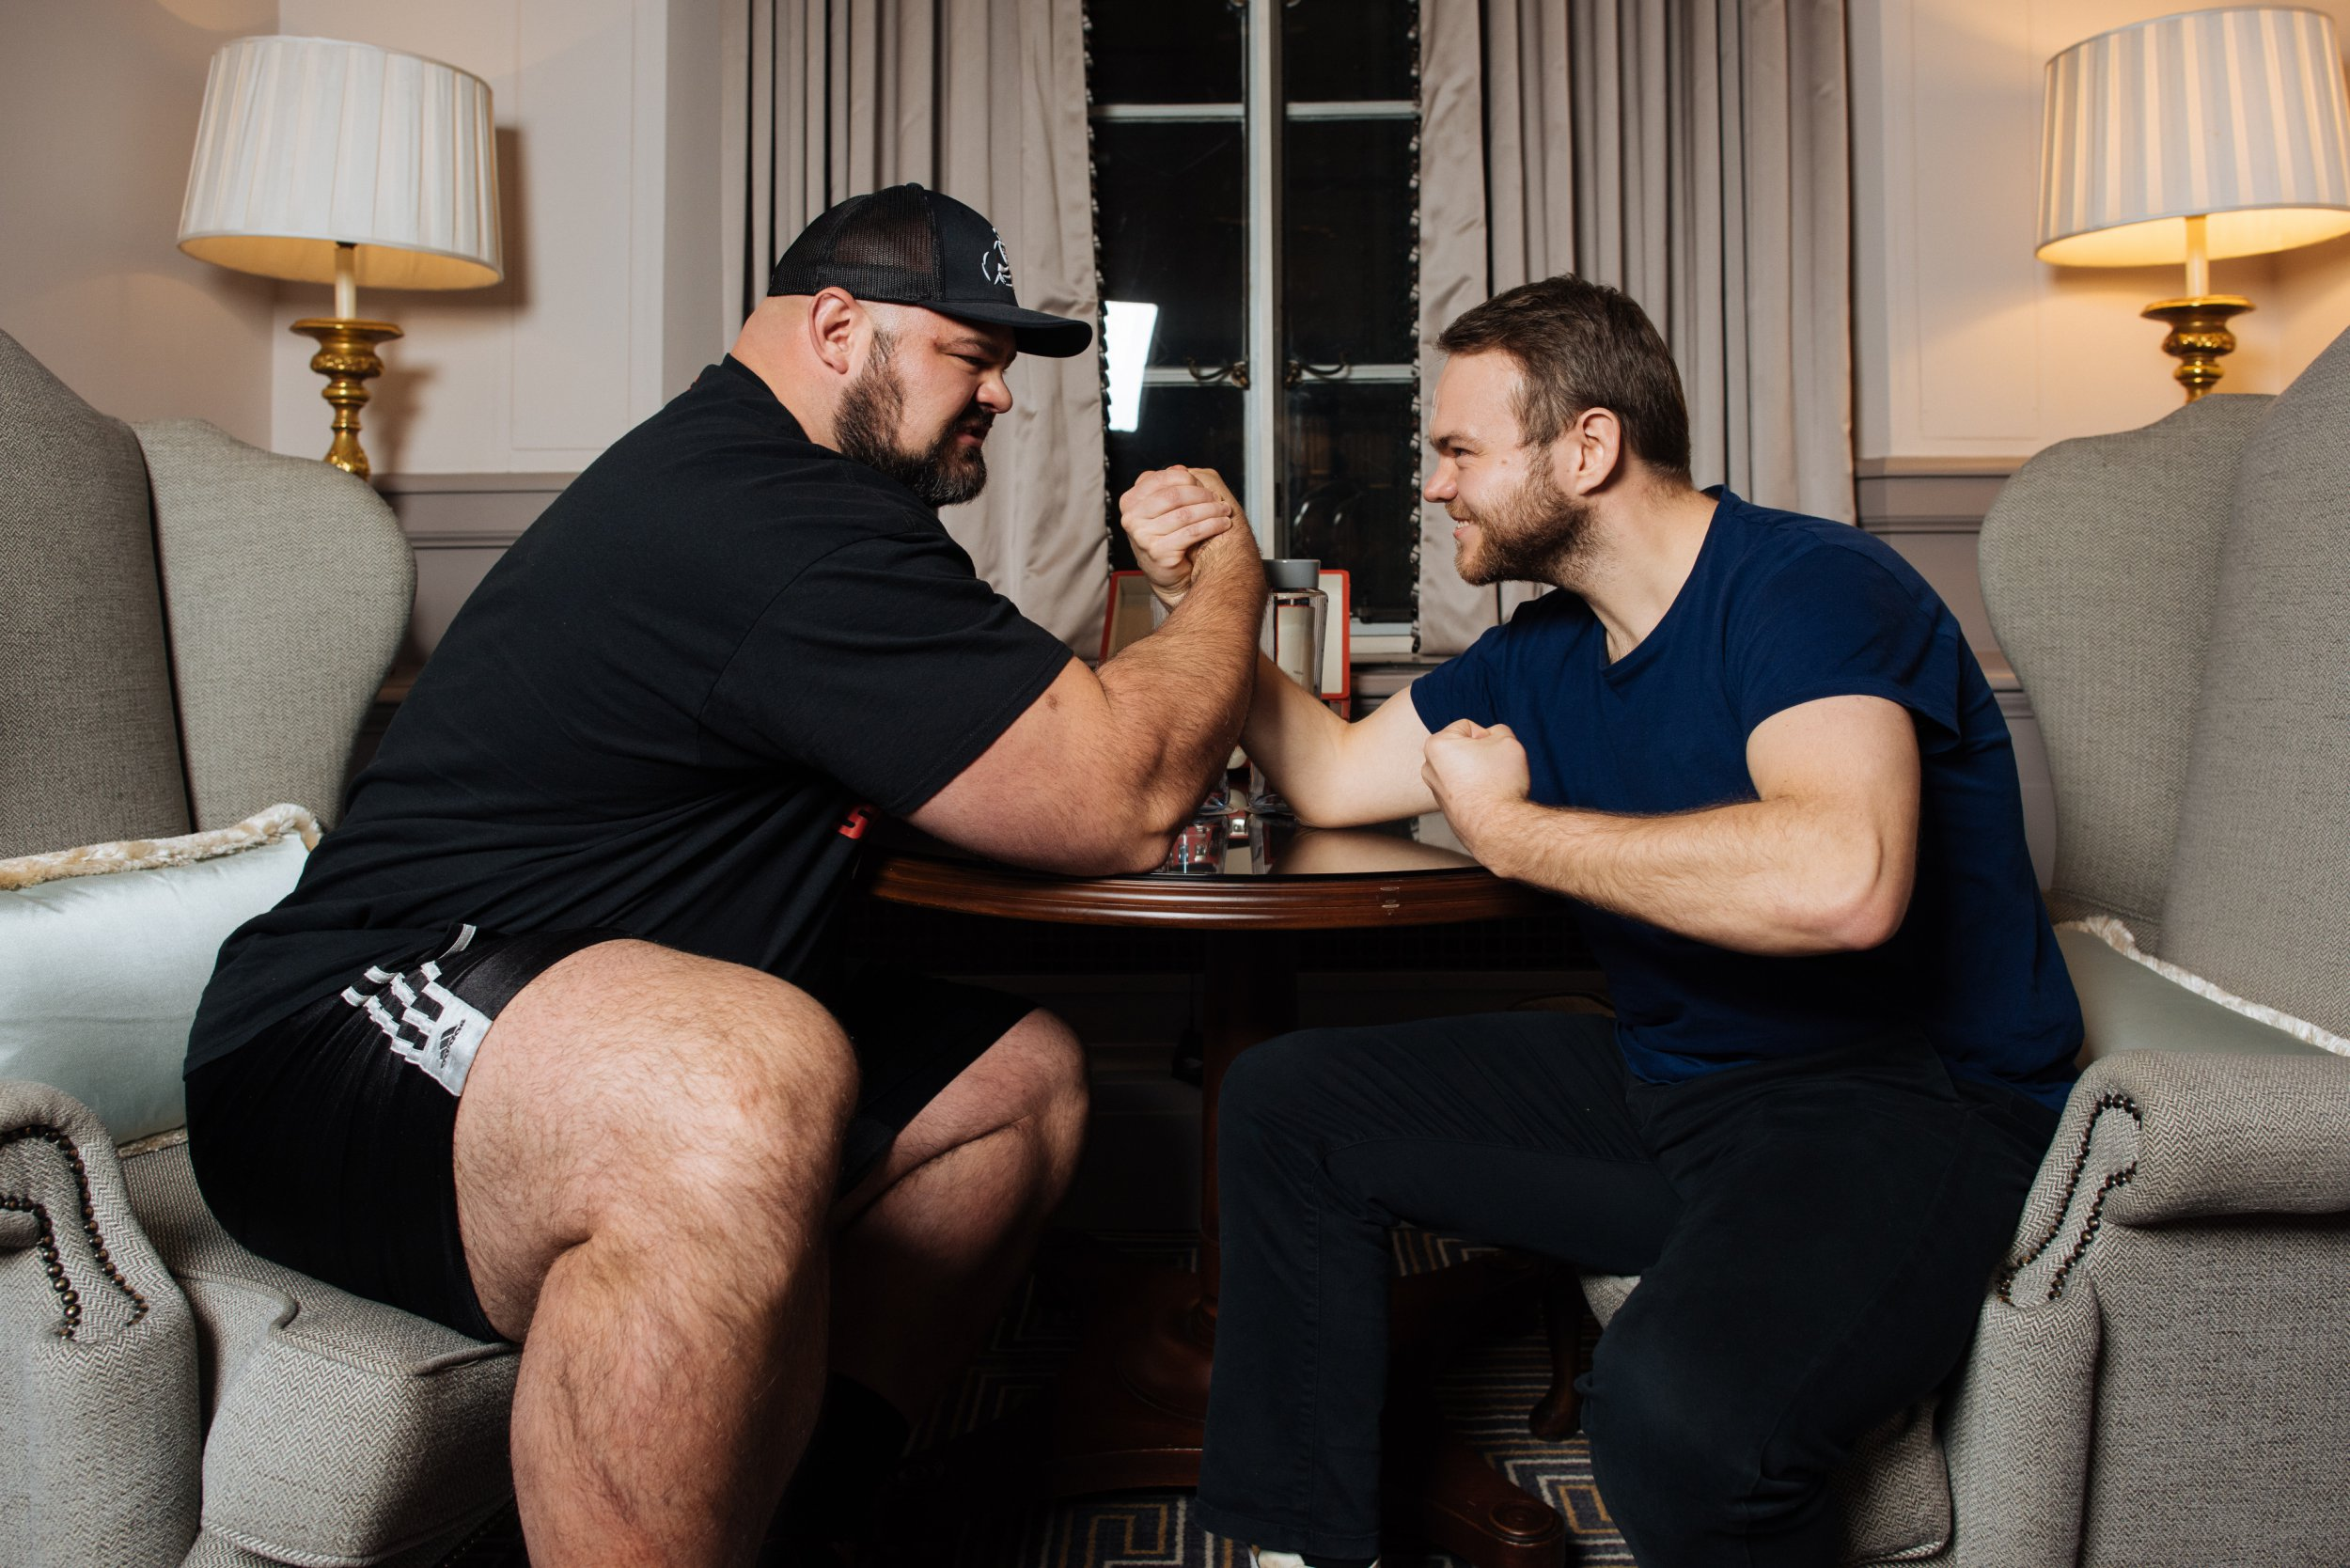 Meeting the strong man who eats 12,000 calories a day and wears size 17 shoes